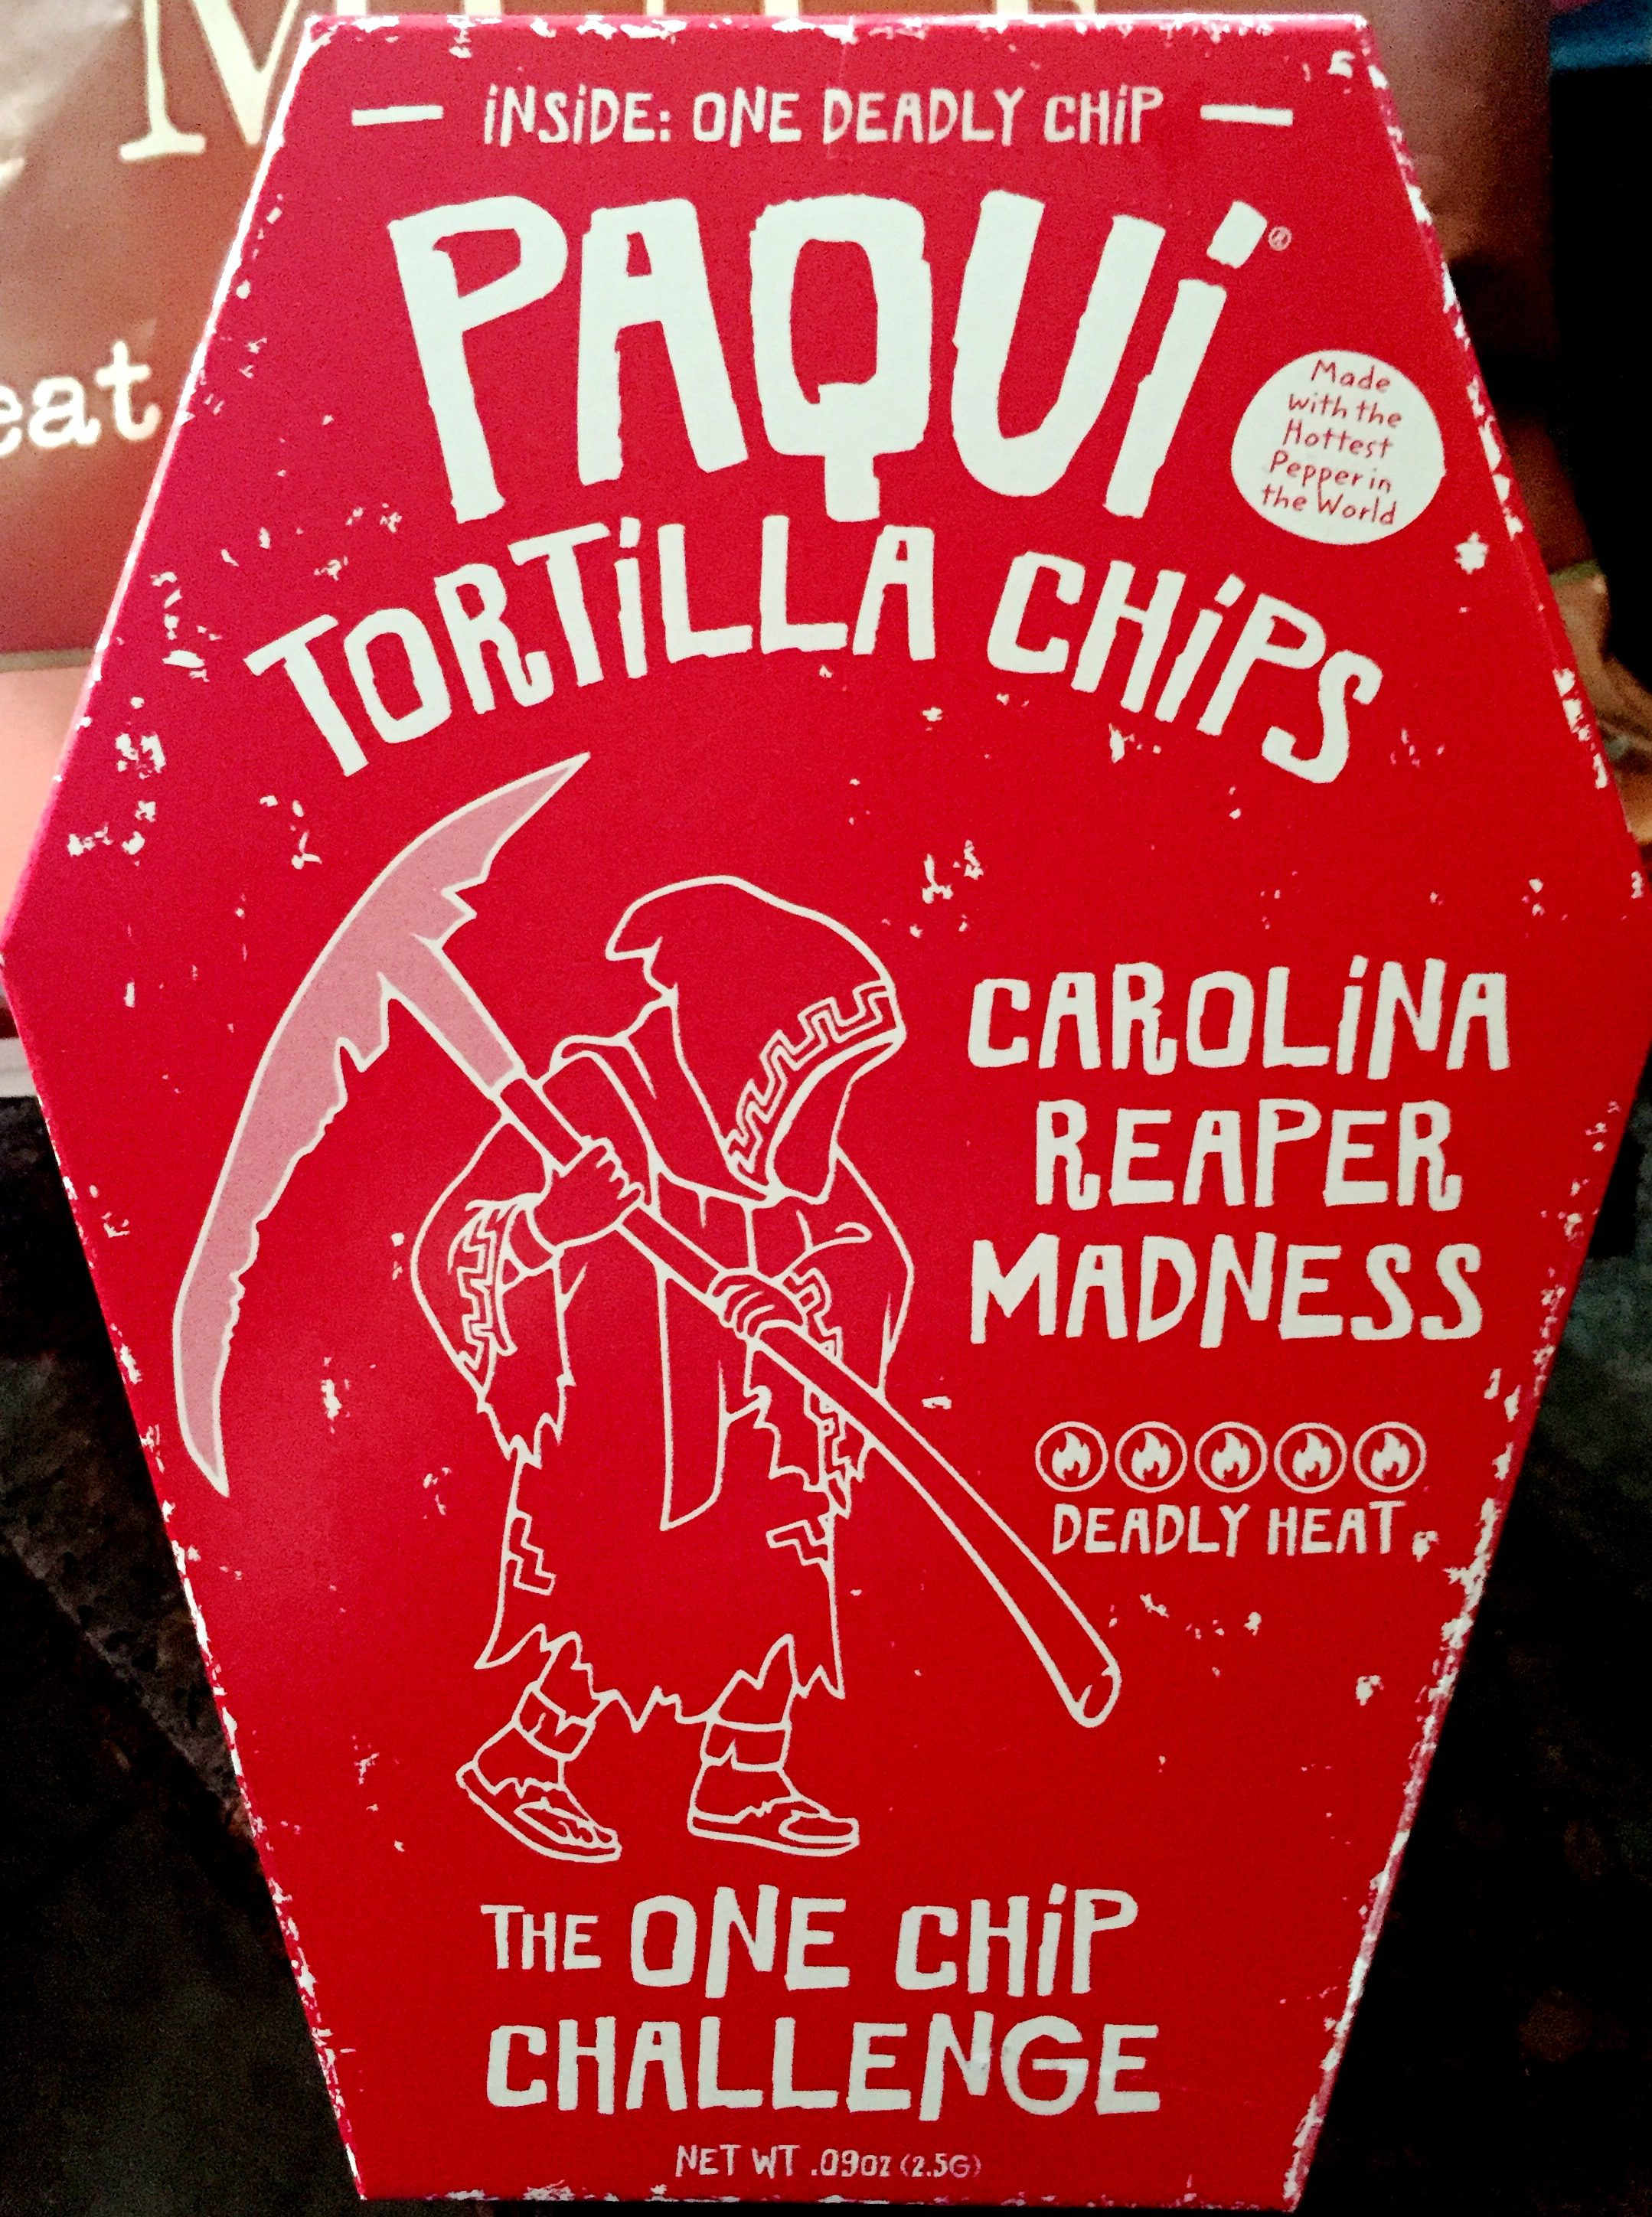 Famed Paqui Tortilla Chips One Chip Challenge Carolina Reapermadness Chip Review Paqui Tortilla Chips One Chip Challenge Carolina Carolina Reaper Madness Chip India Carolina Reaper Madness Chip Austra nice food Carolina Reaper Madness Chip